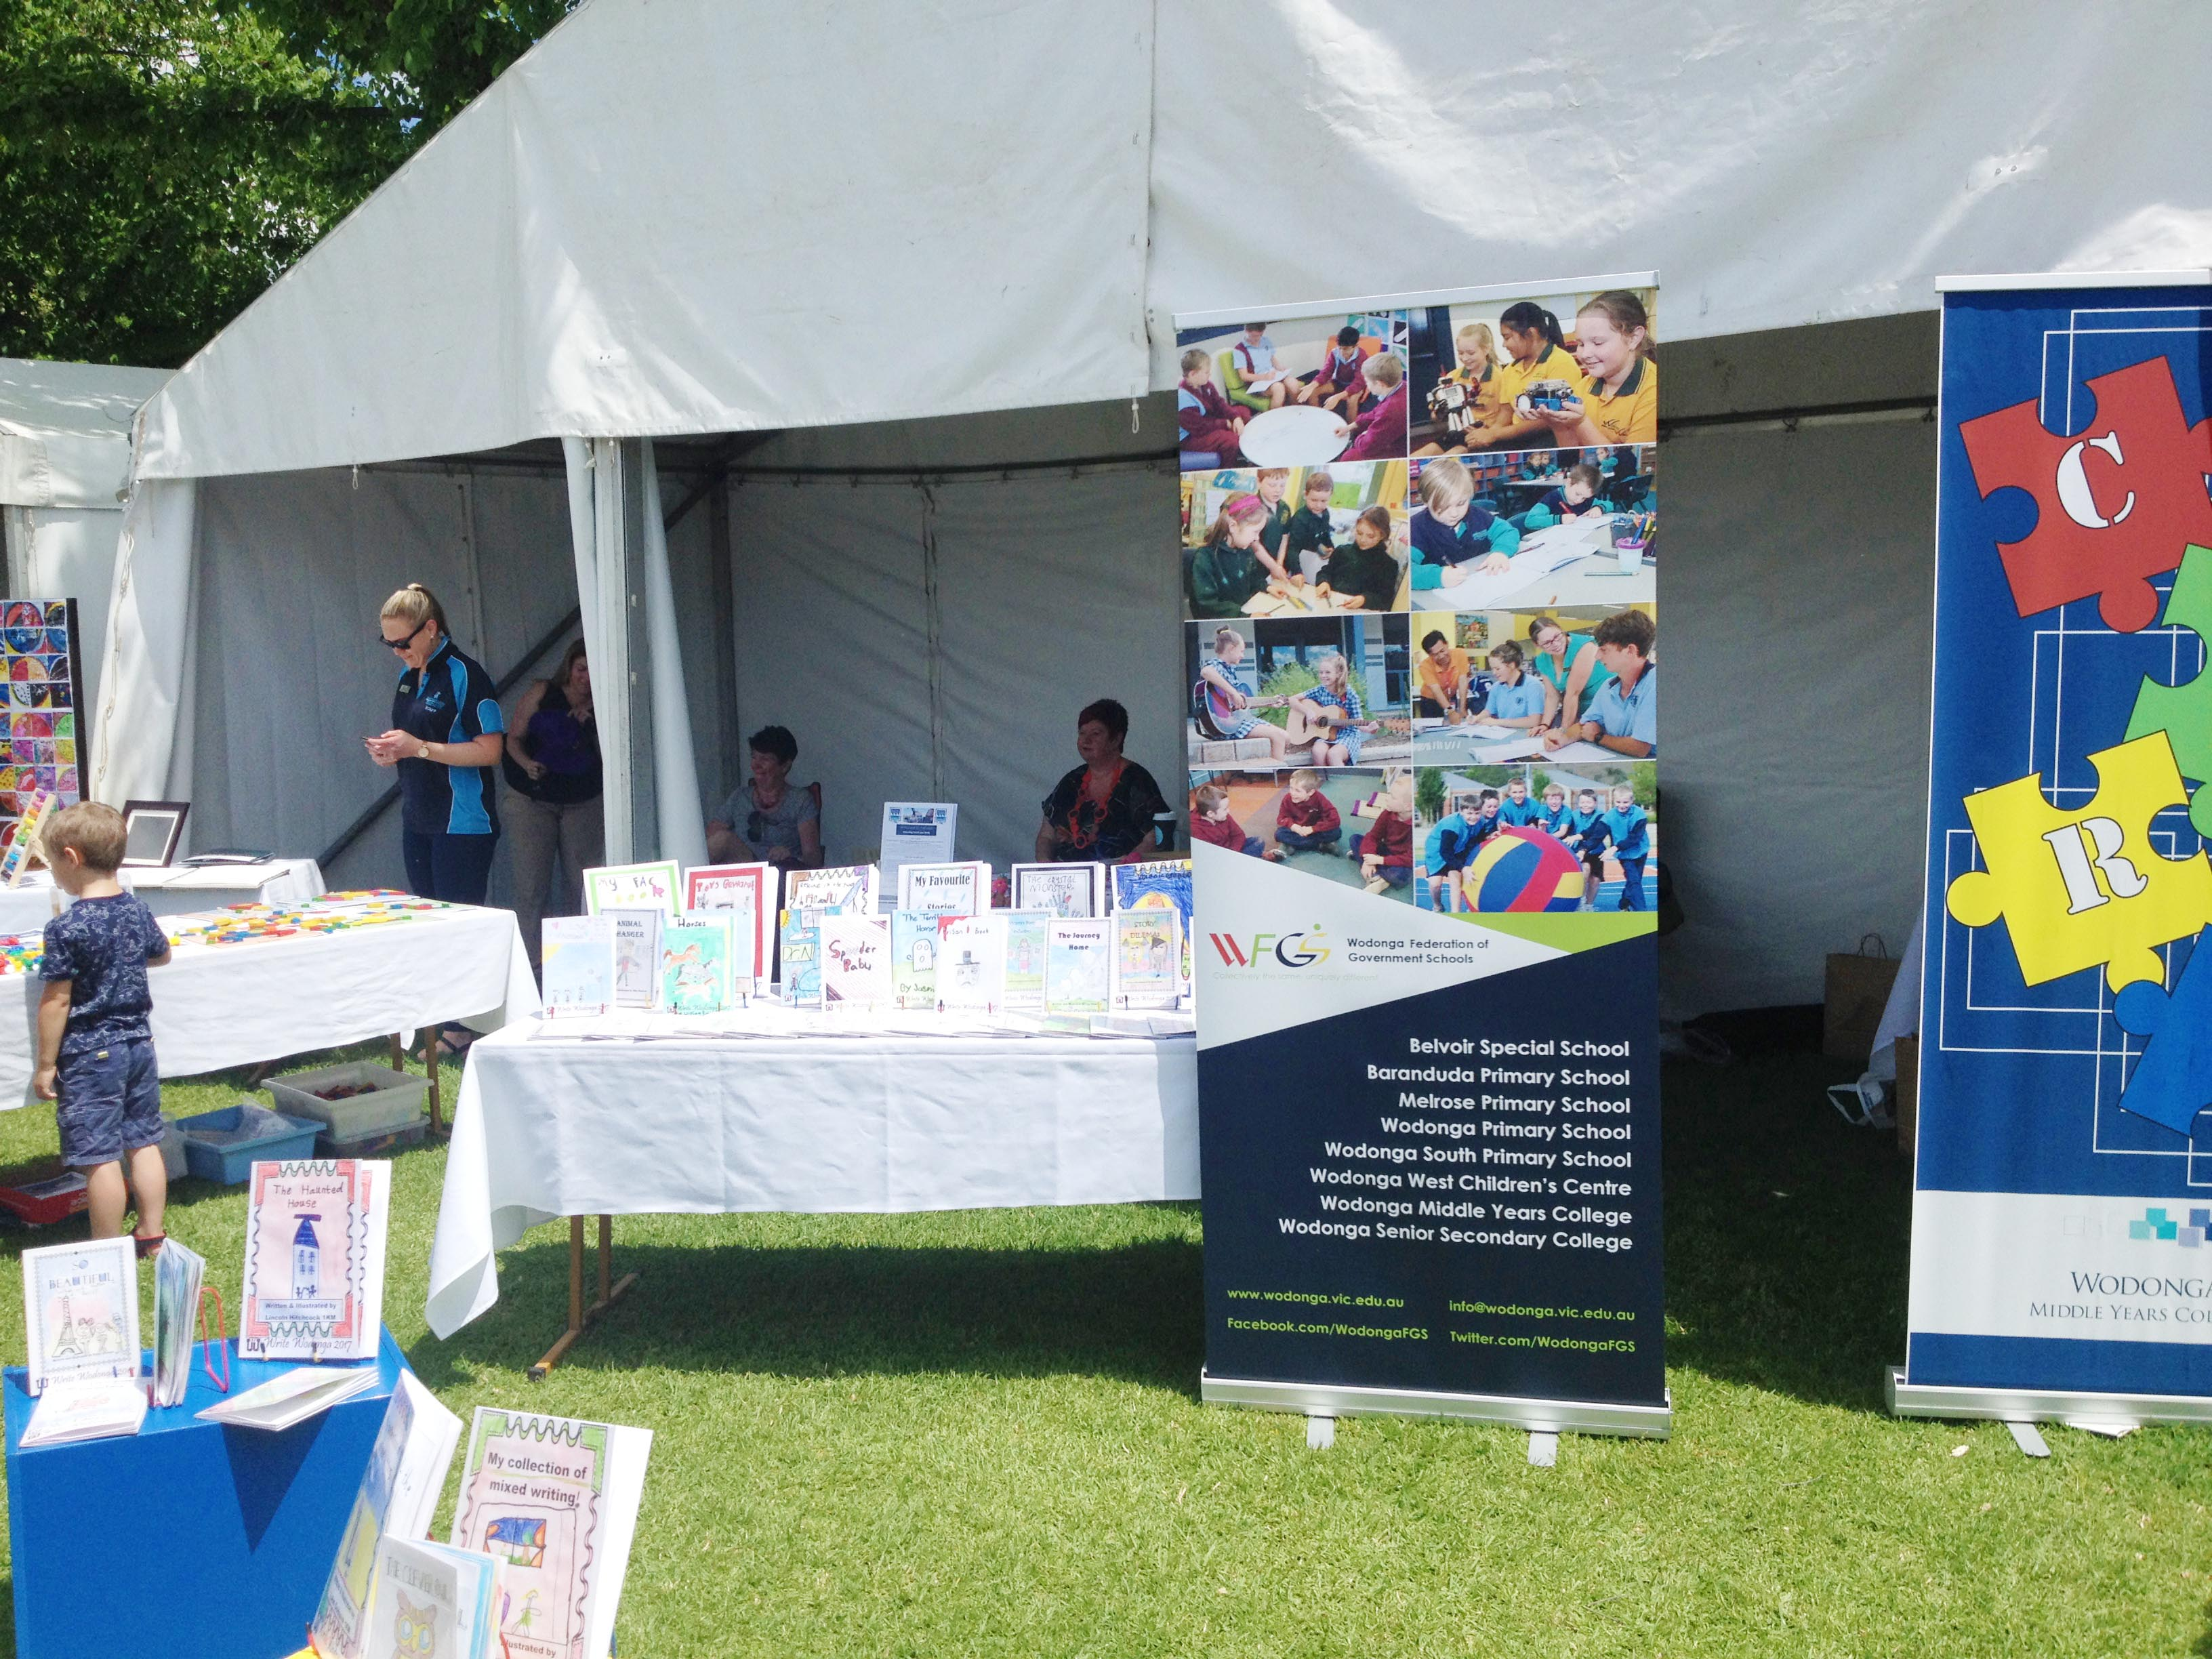 Wodonga Children's Fair